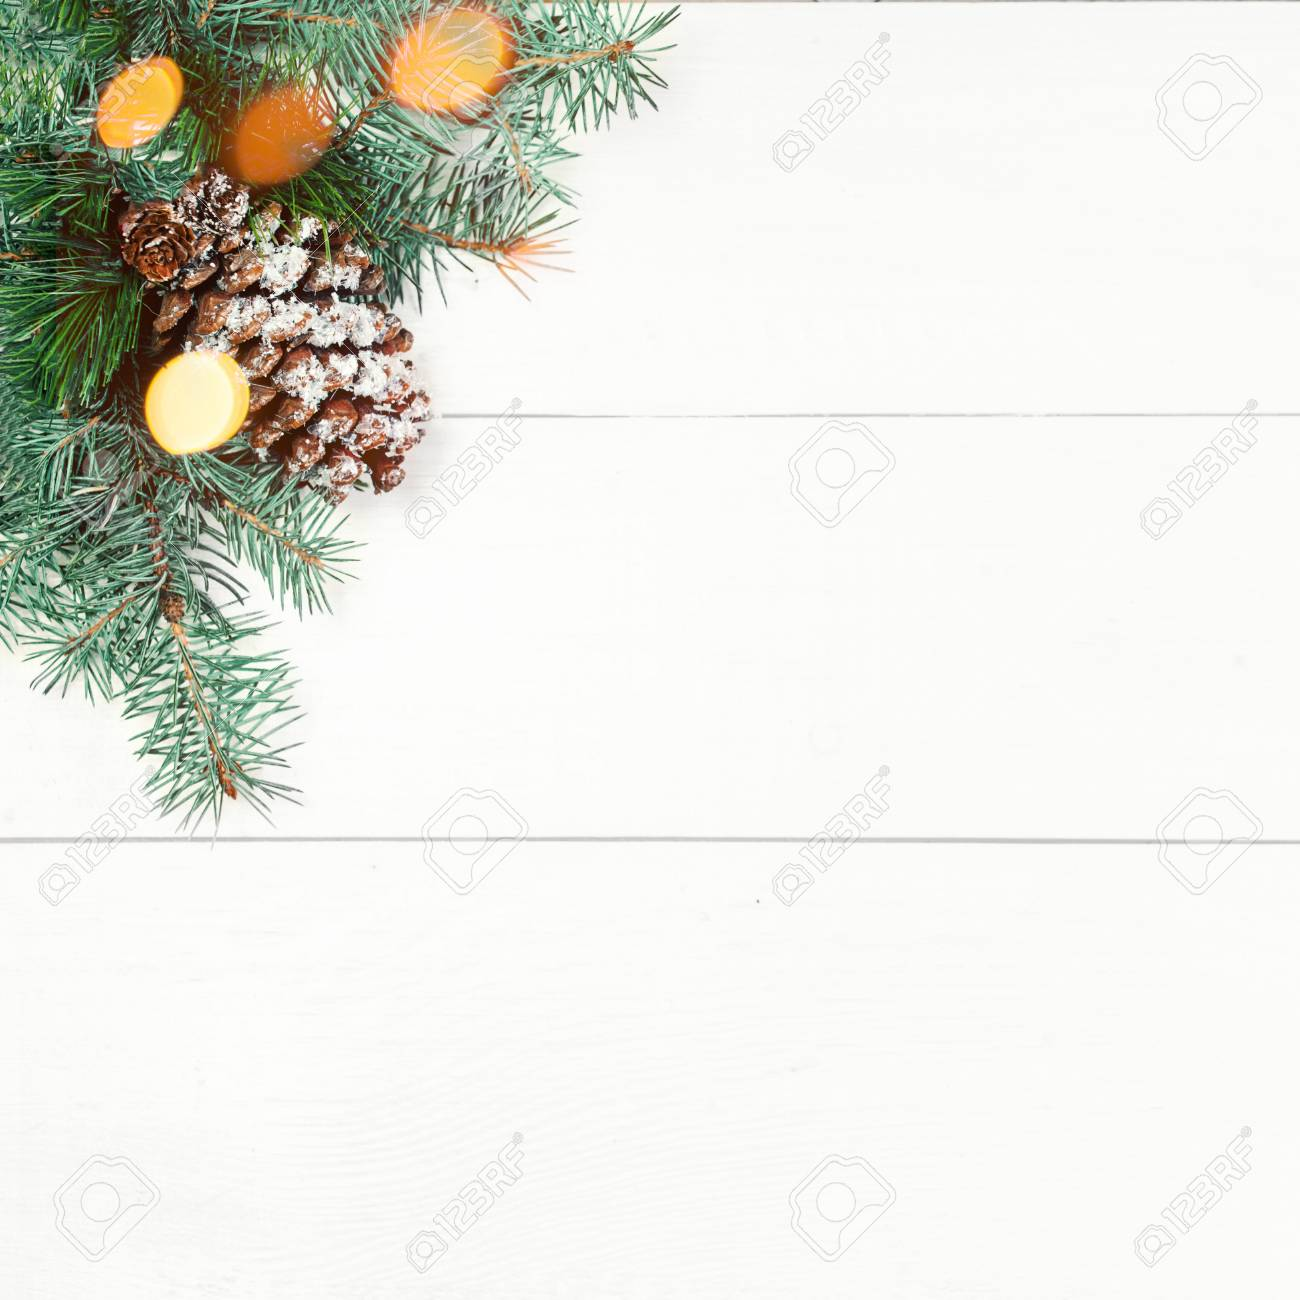 Christmas Tree Frame And Holidays Ornaments With Sparkling Lights